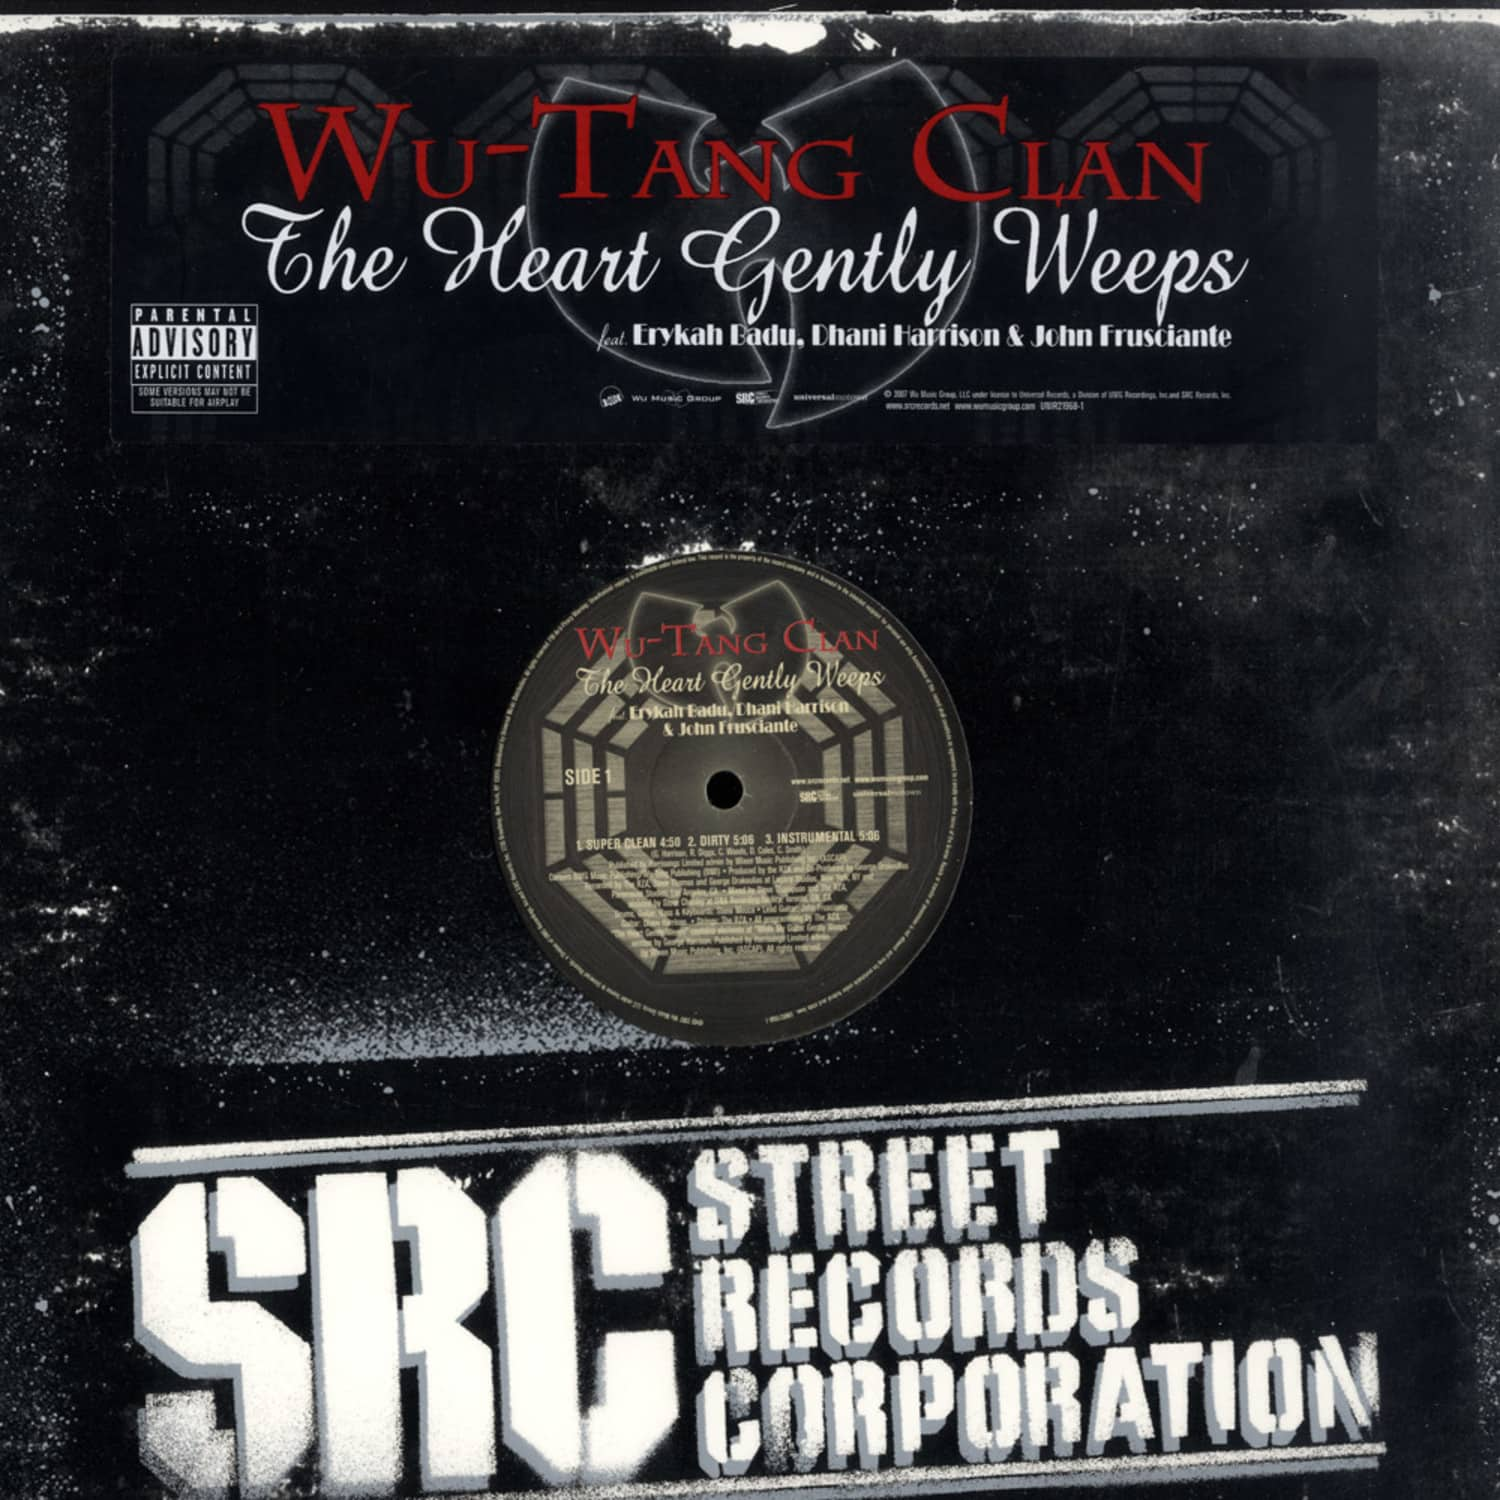 Wu-Tang Clan - The Heart Gently Weeps